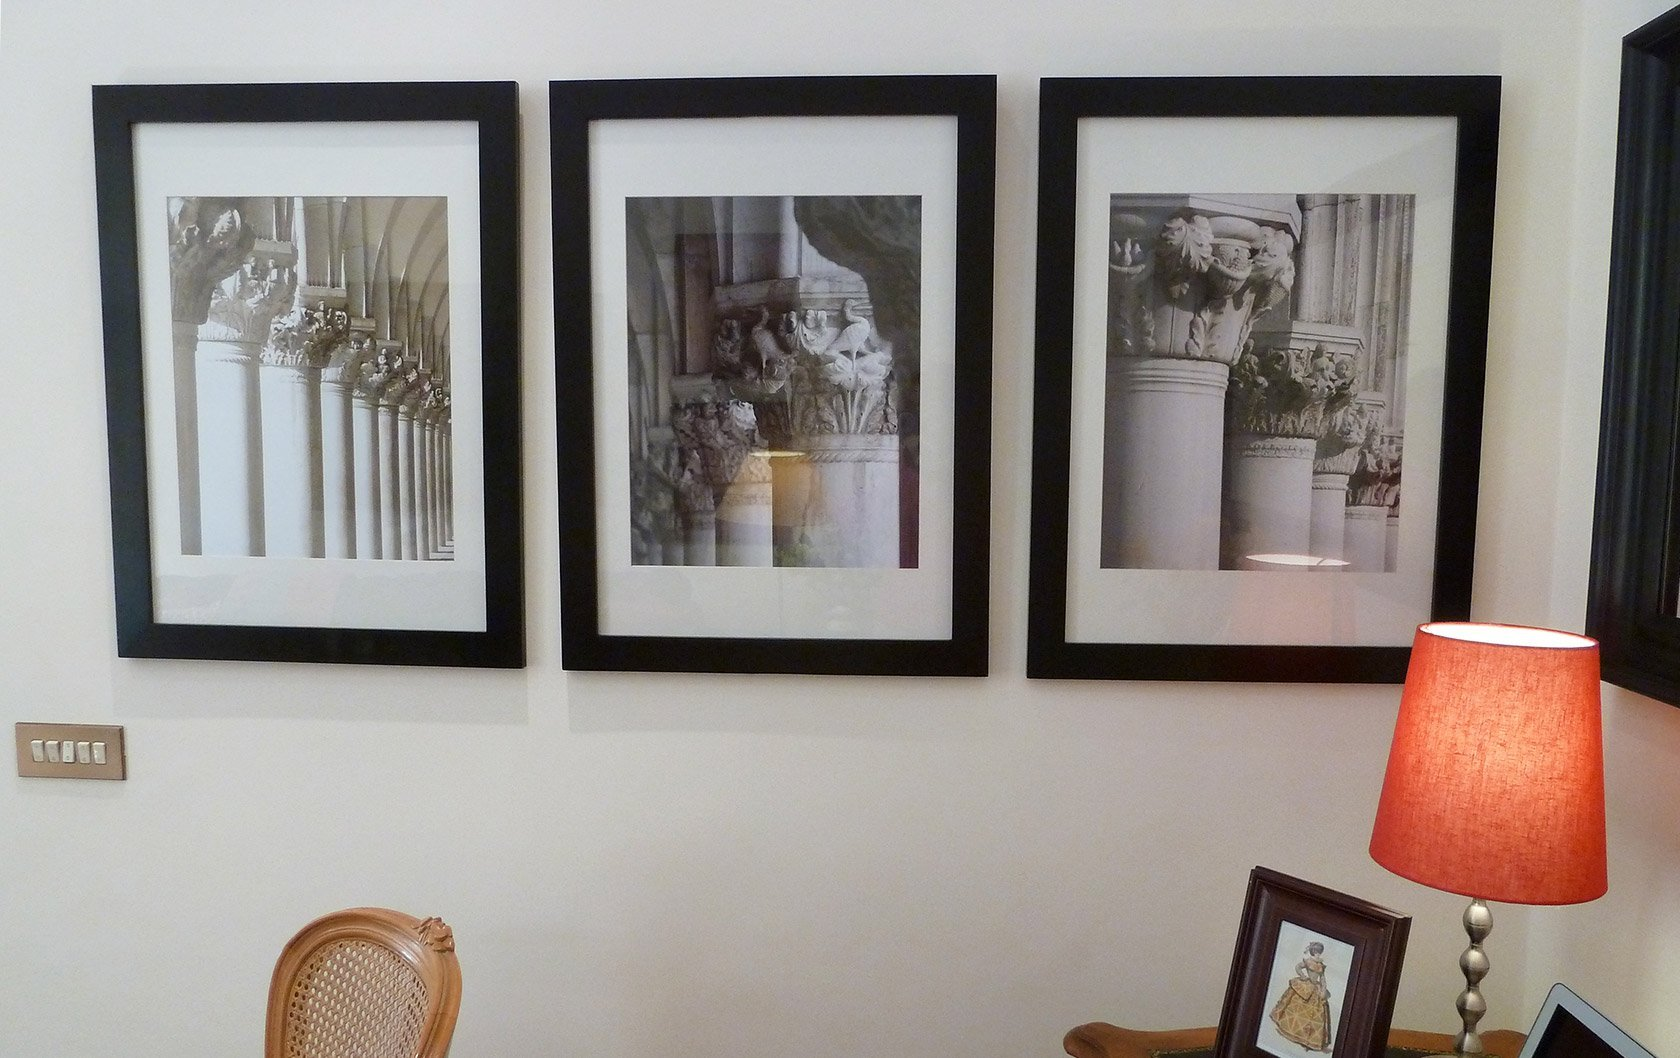 italy-new-framed-photos